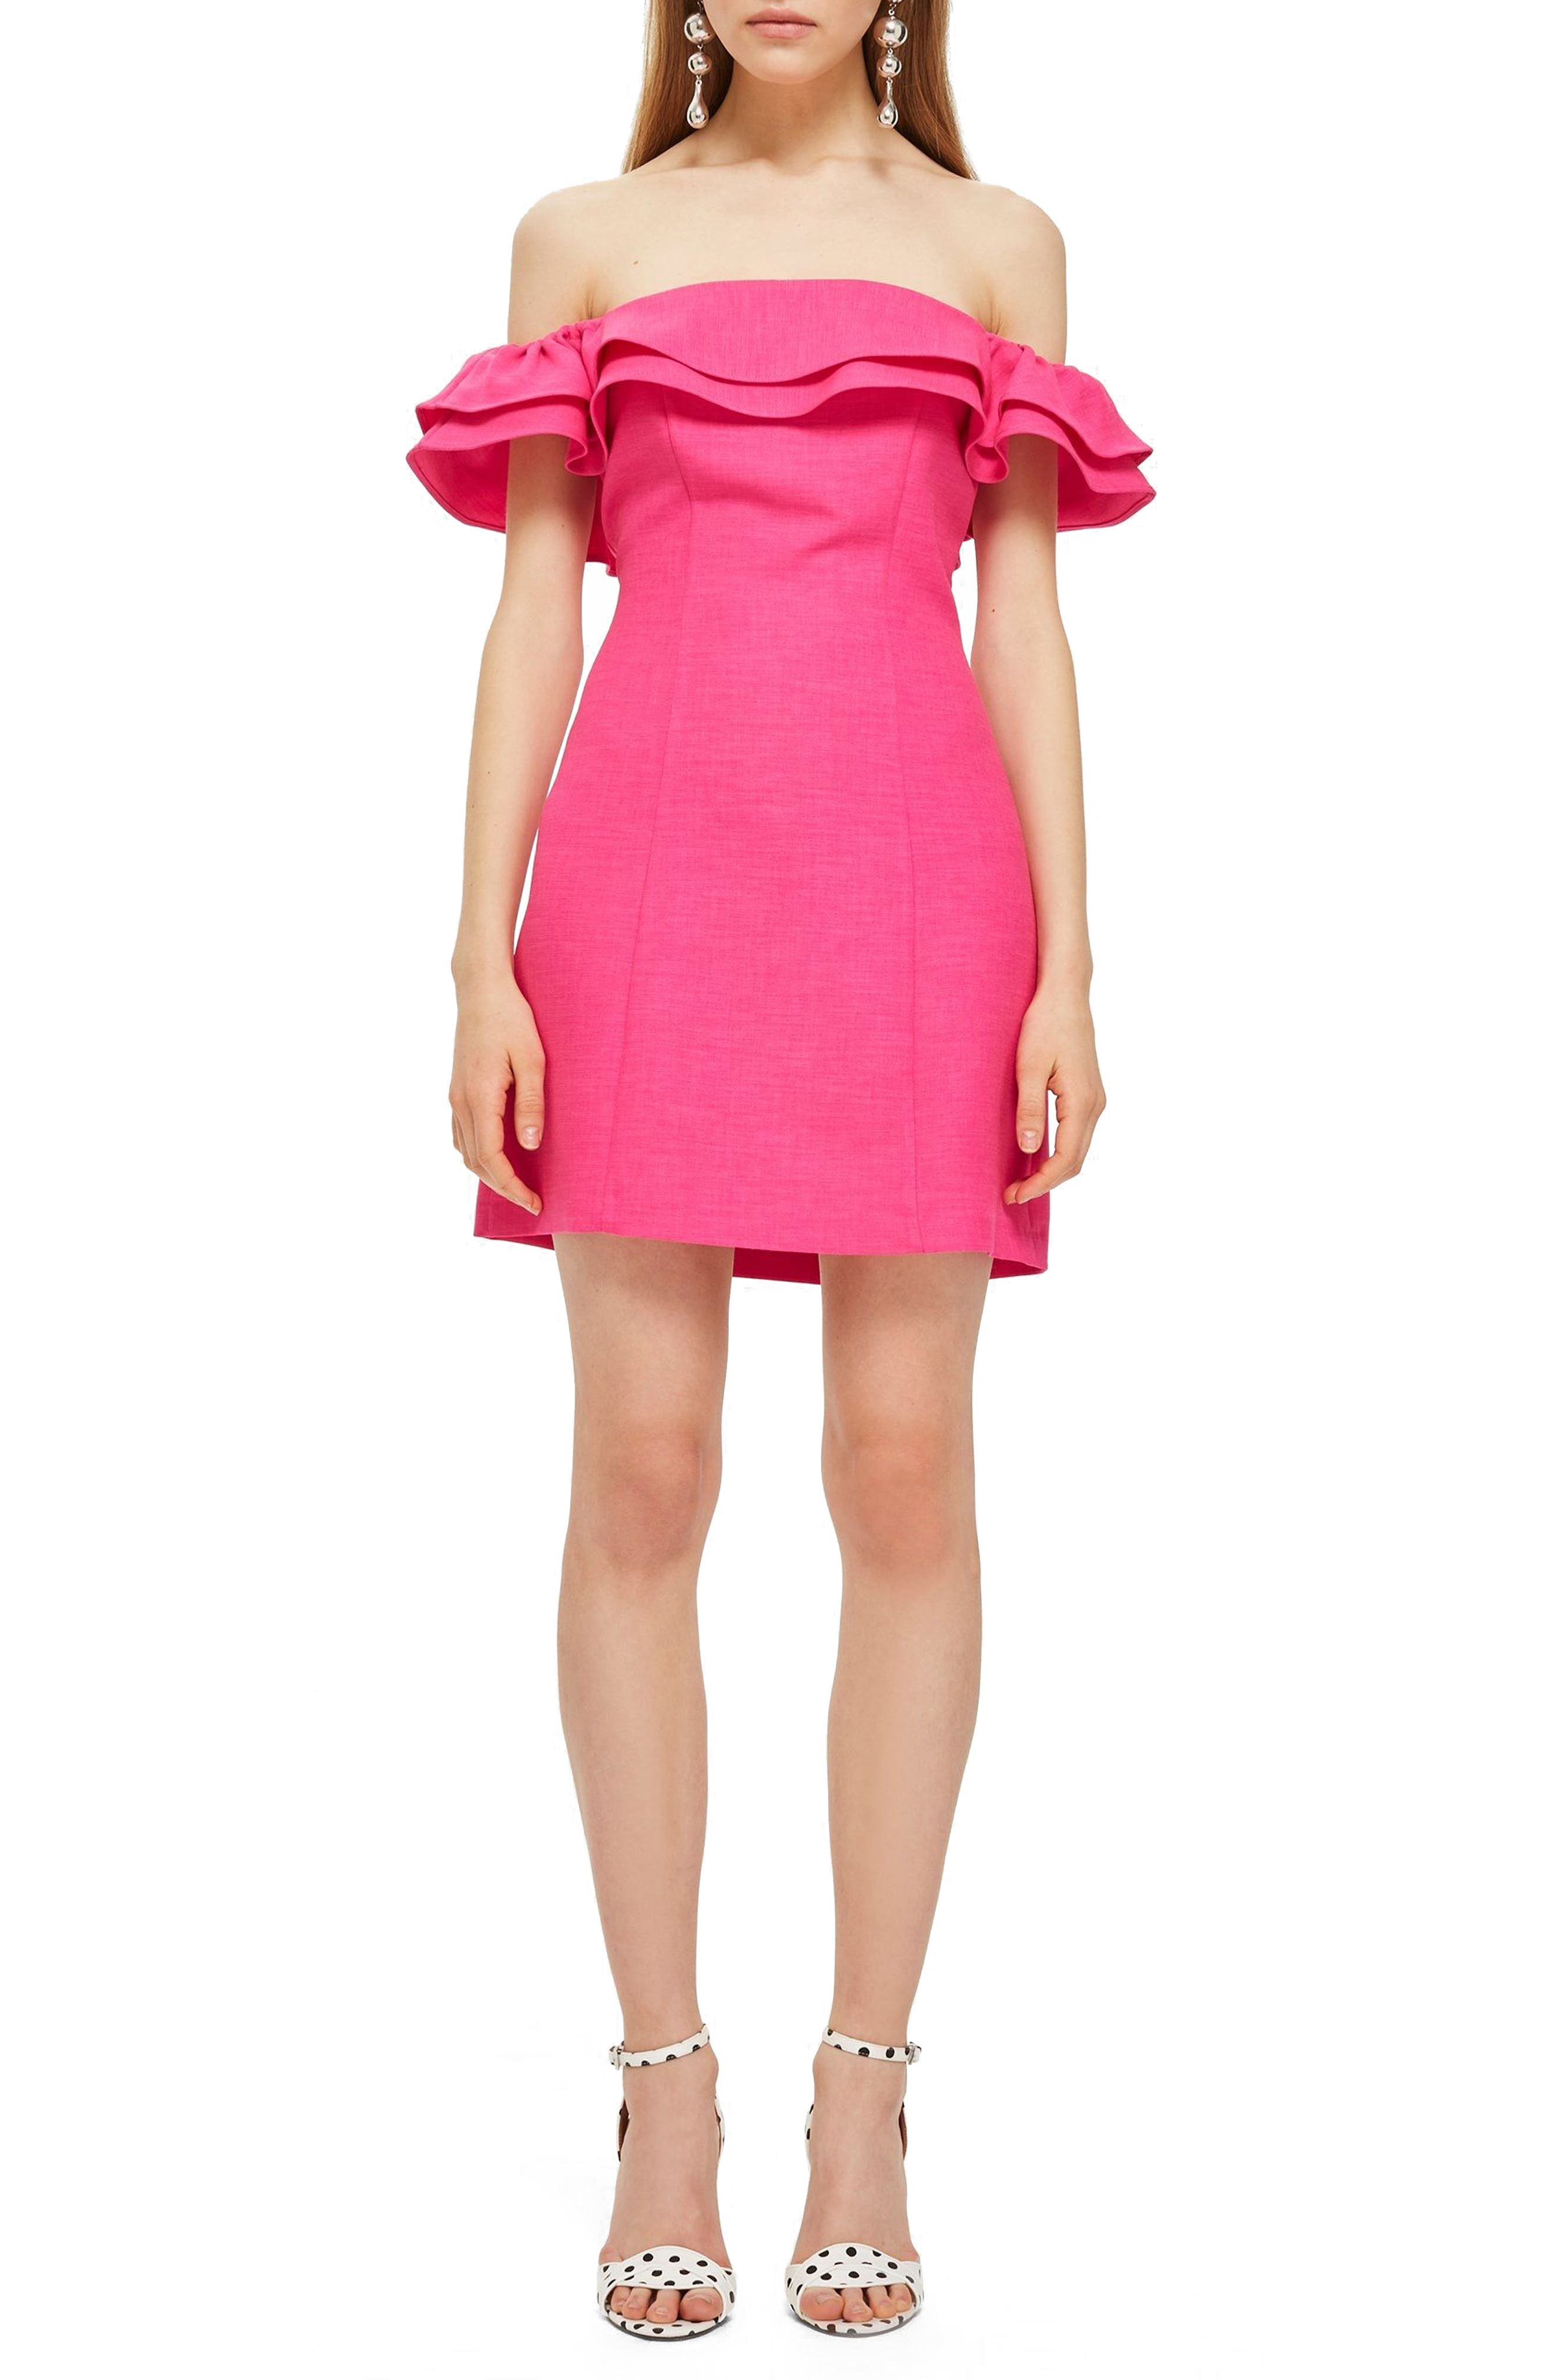 Topshop Off the Shoulder Ruffle Minidress